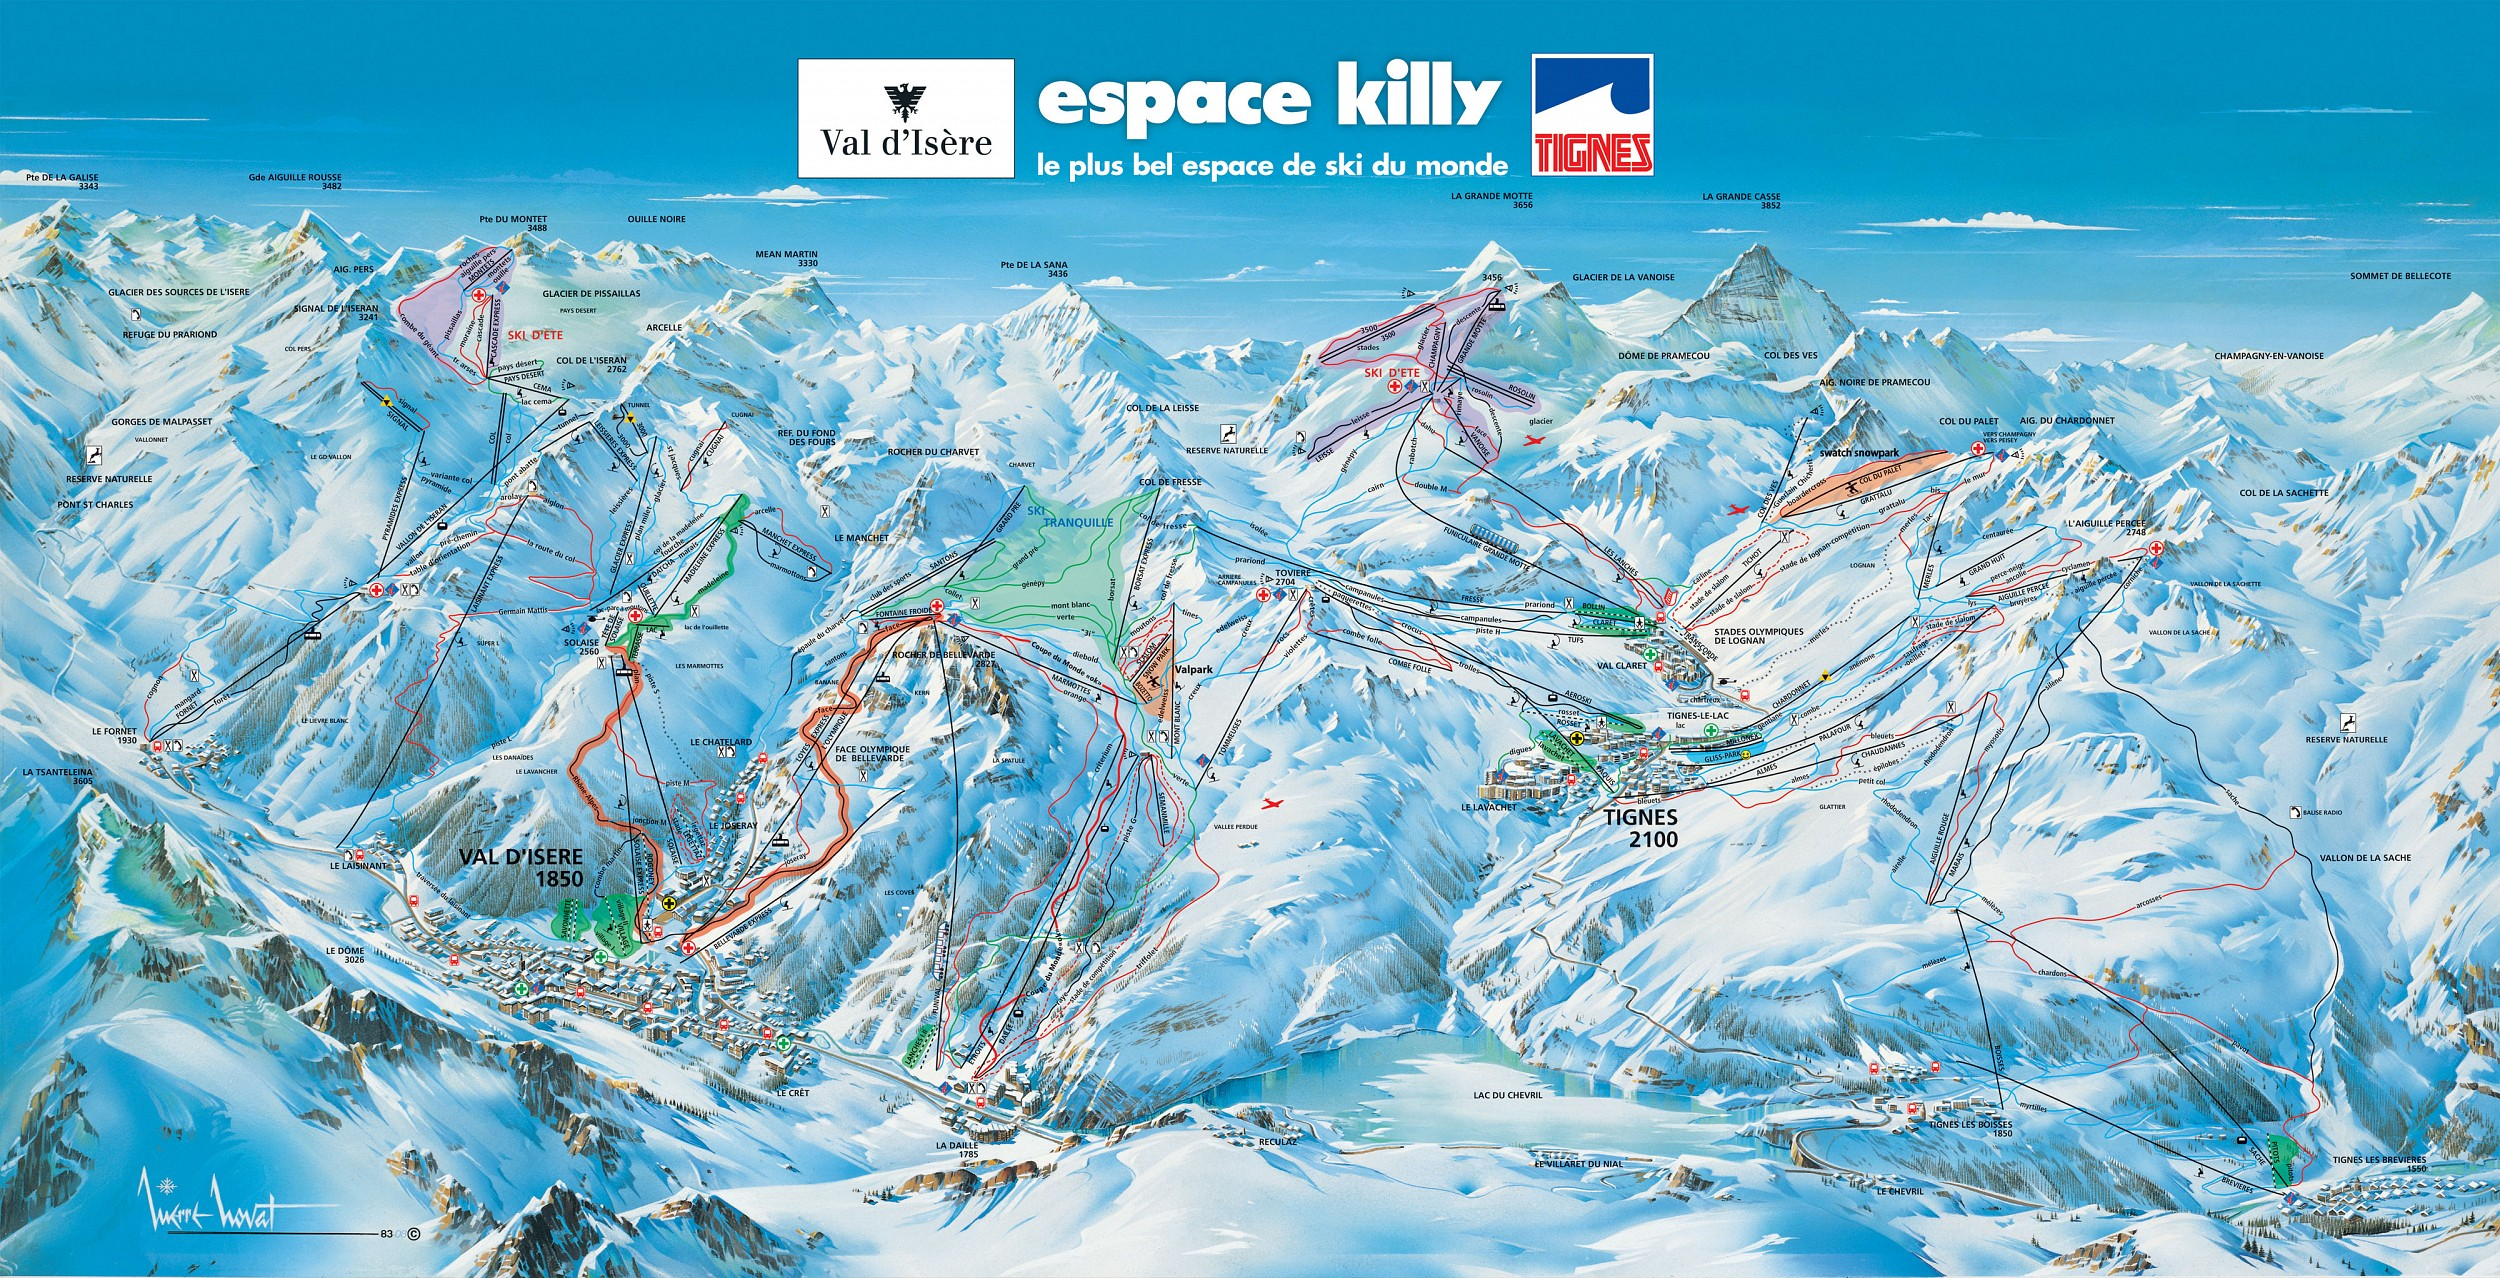 resized_Skipiste Skigebied Espace Killy.jpg